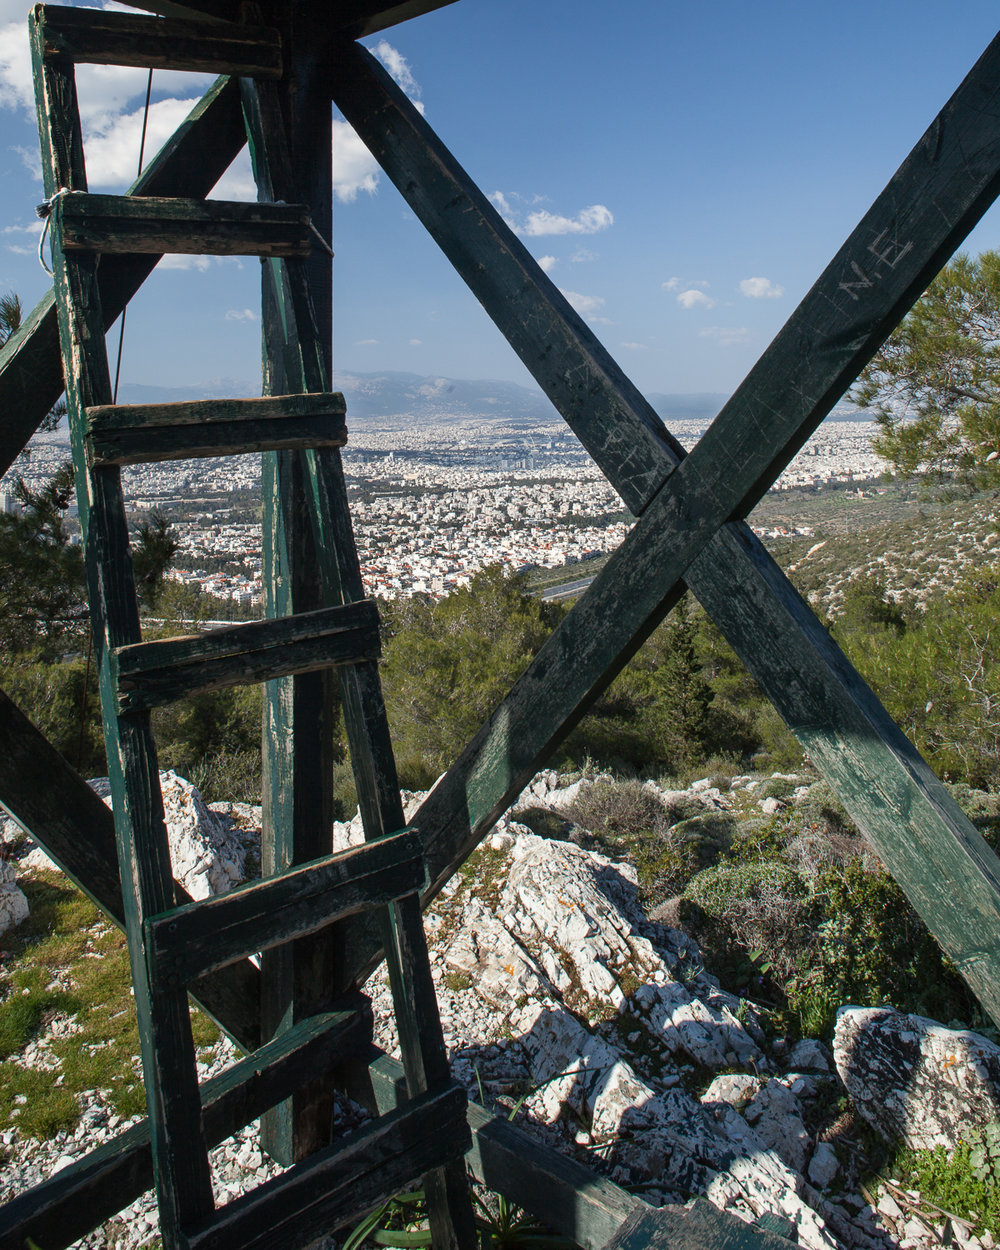 Fire lookout tower on Mt. Hymettus. The only forested land remaining near Athens is on Mt. Hymettus, though even this has come under severe threat in recent years.